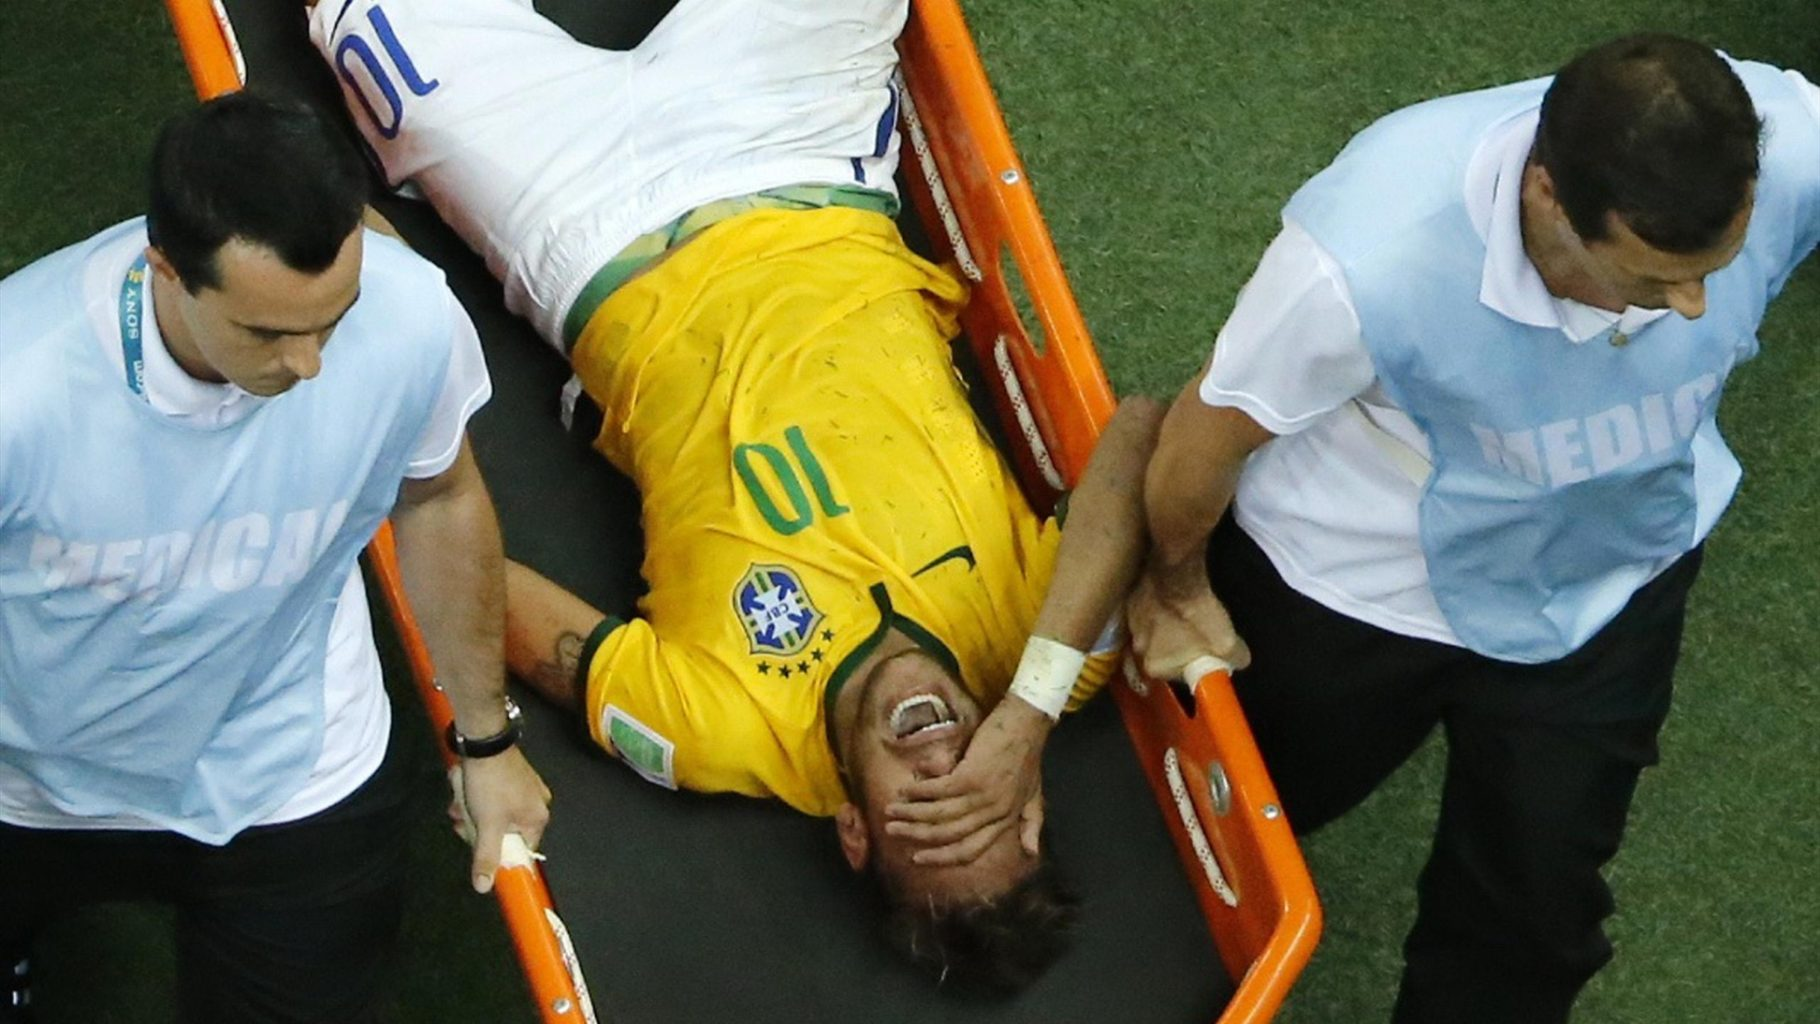 Neymar carried away off the pitch on a stretcher, after his back injury